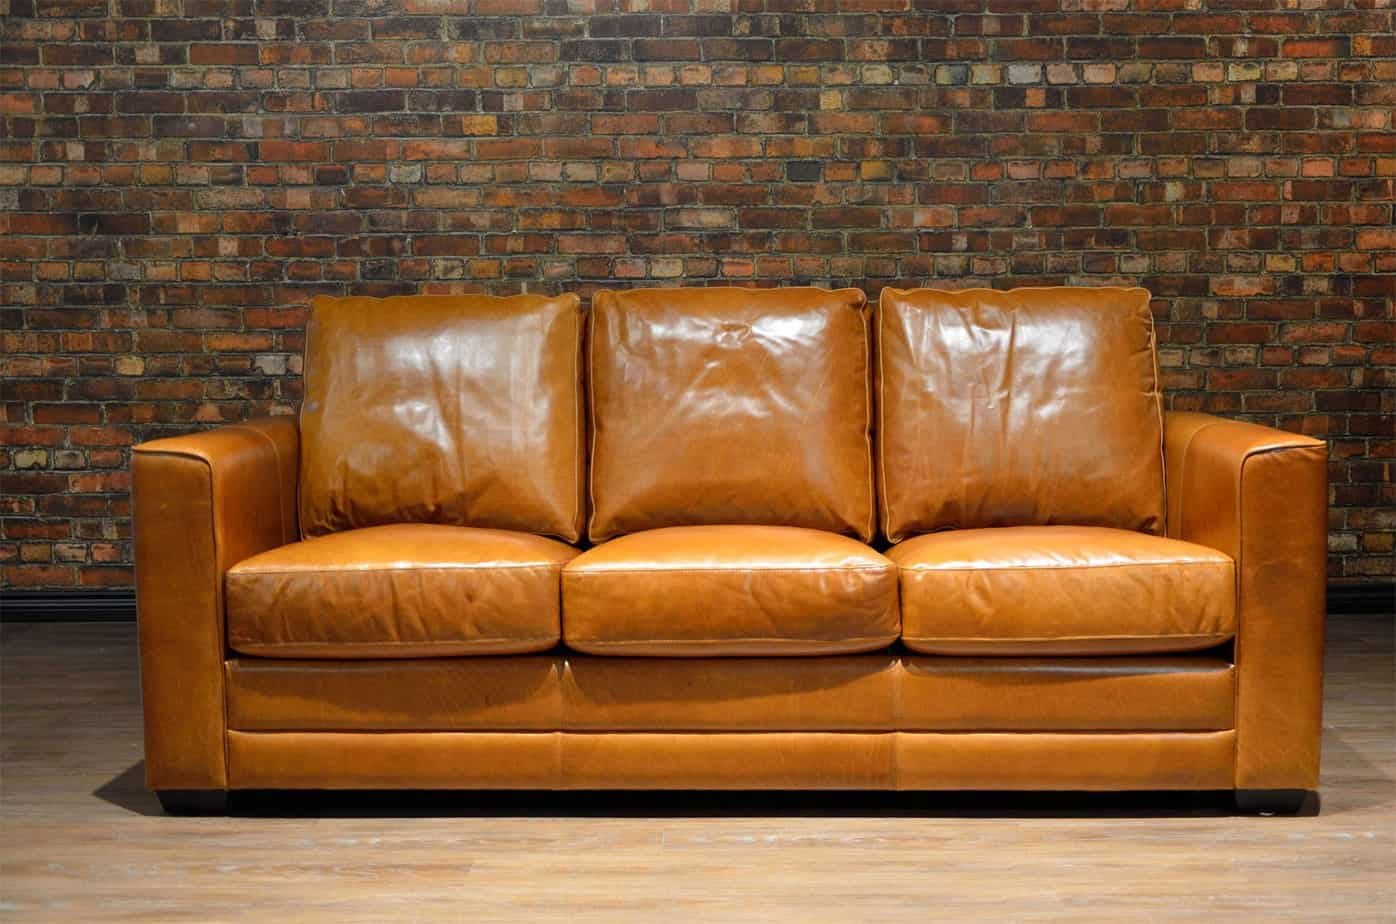 Leather sofa sectional choose color leather size for Sofas de piel economicos